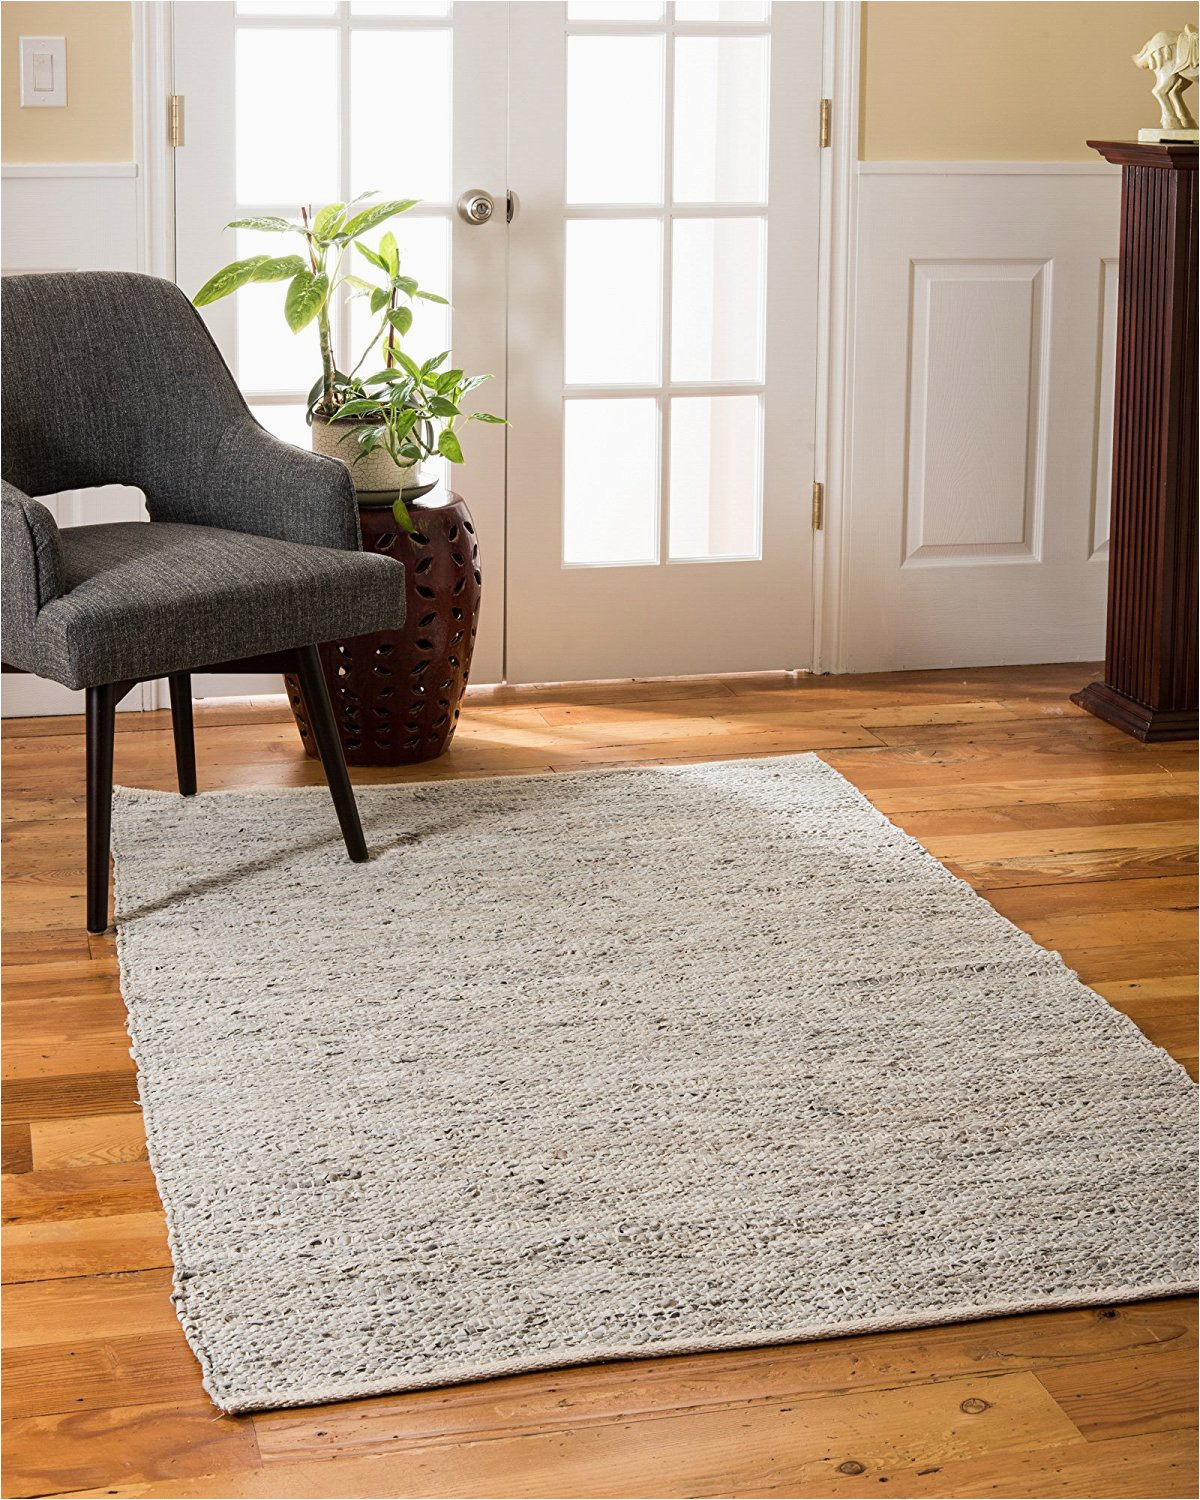 Non toxic Cotton area Rugs Trusted organic area Rug Brands & Manufacturers